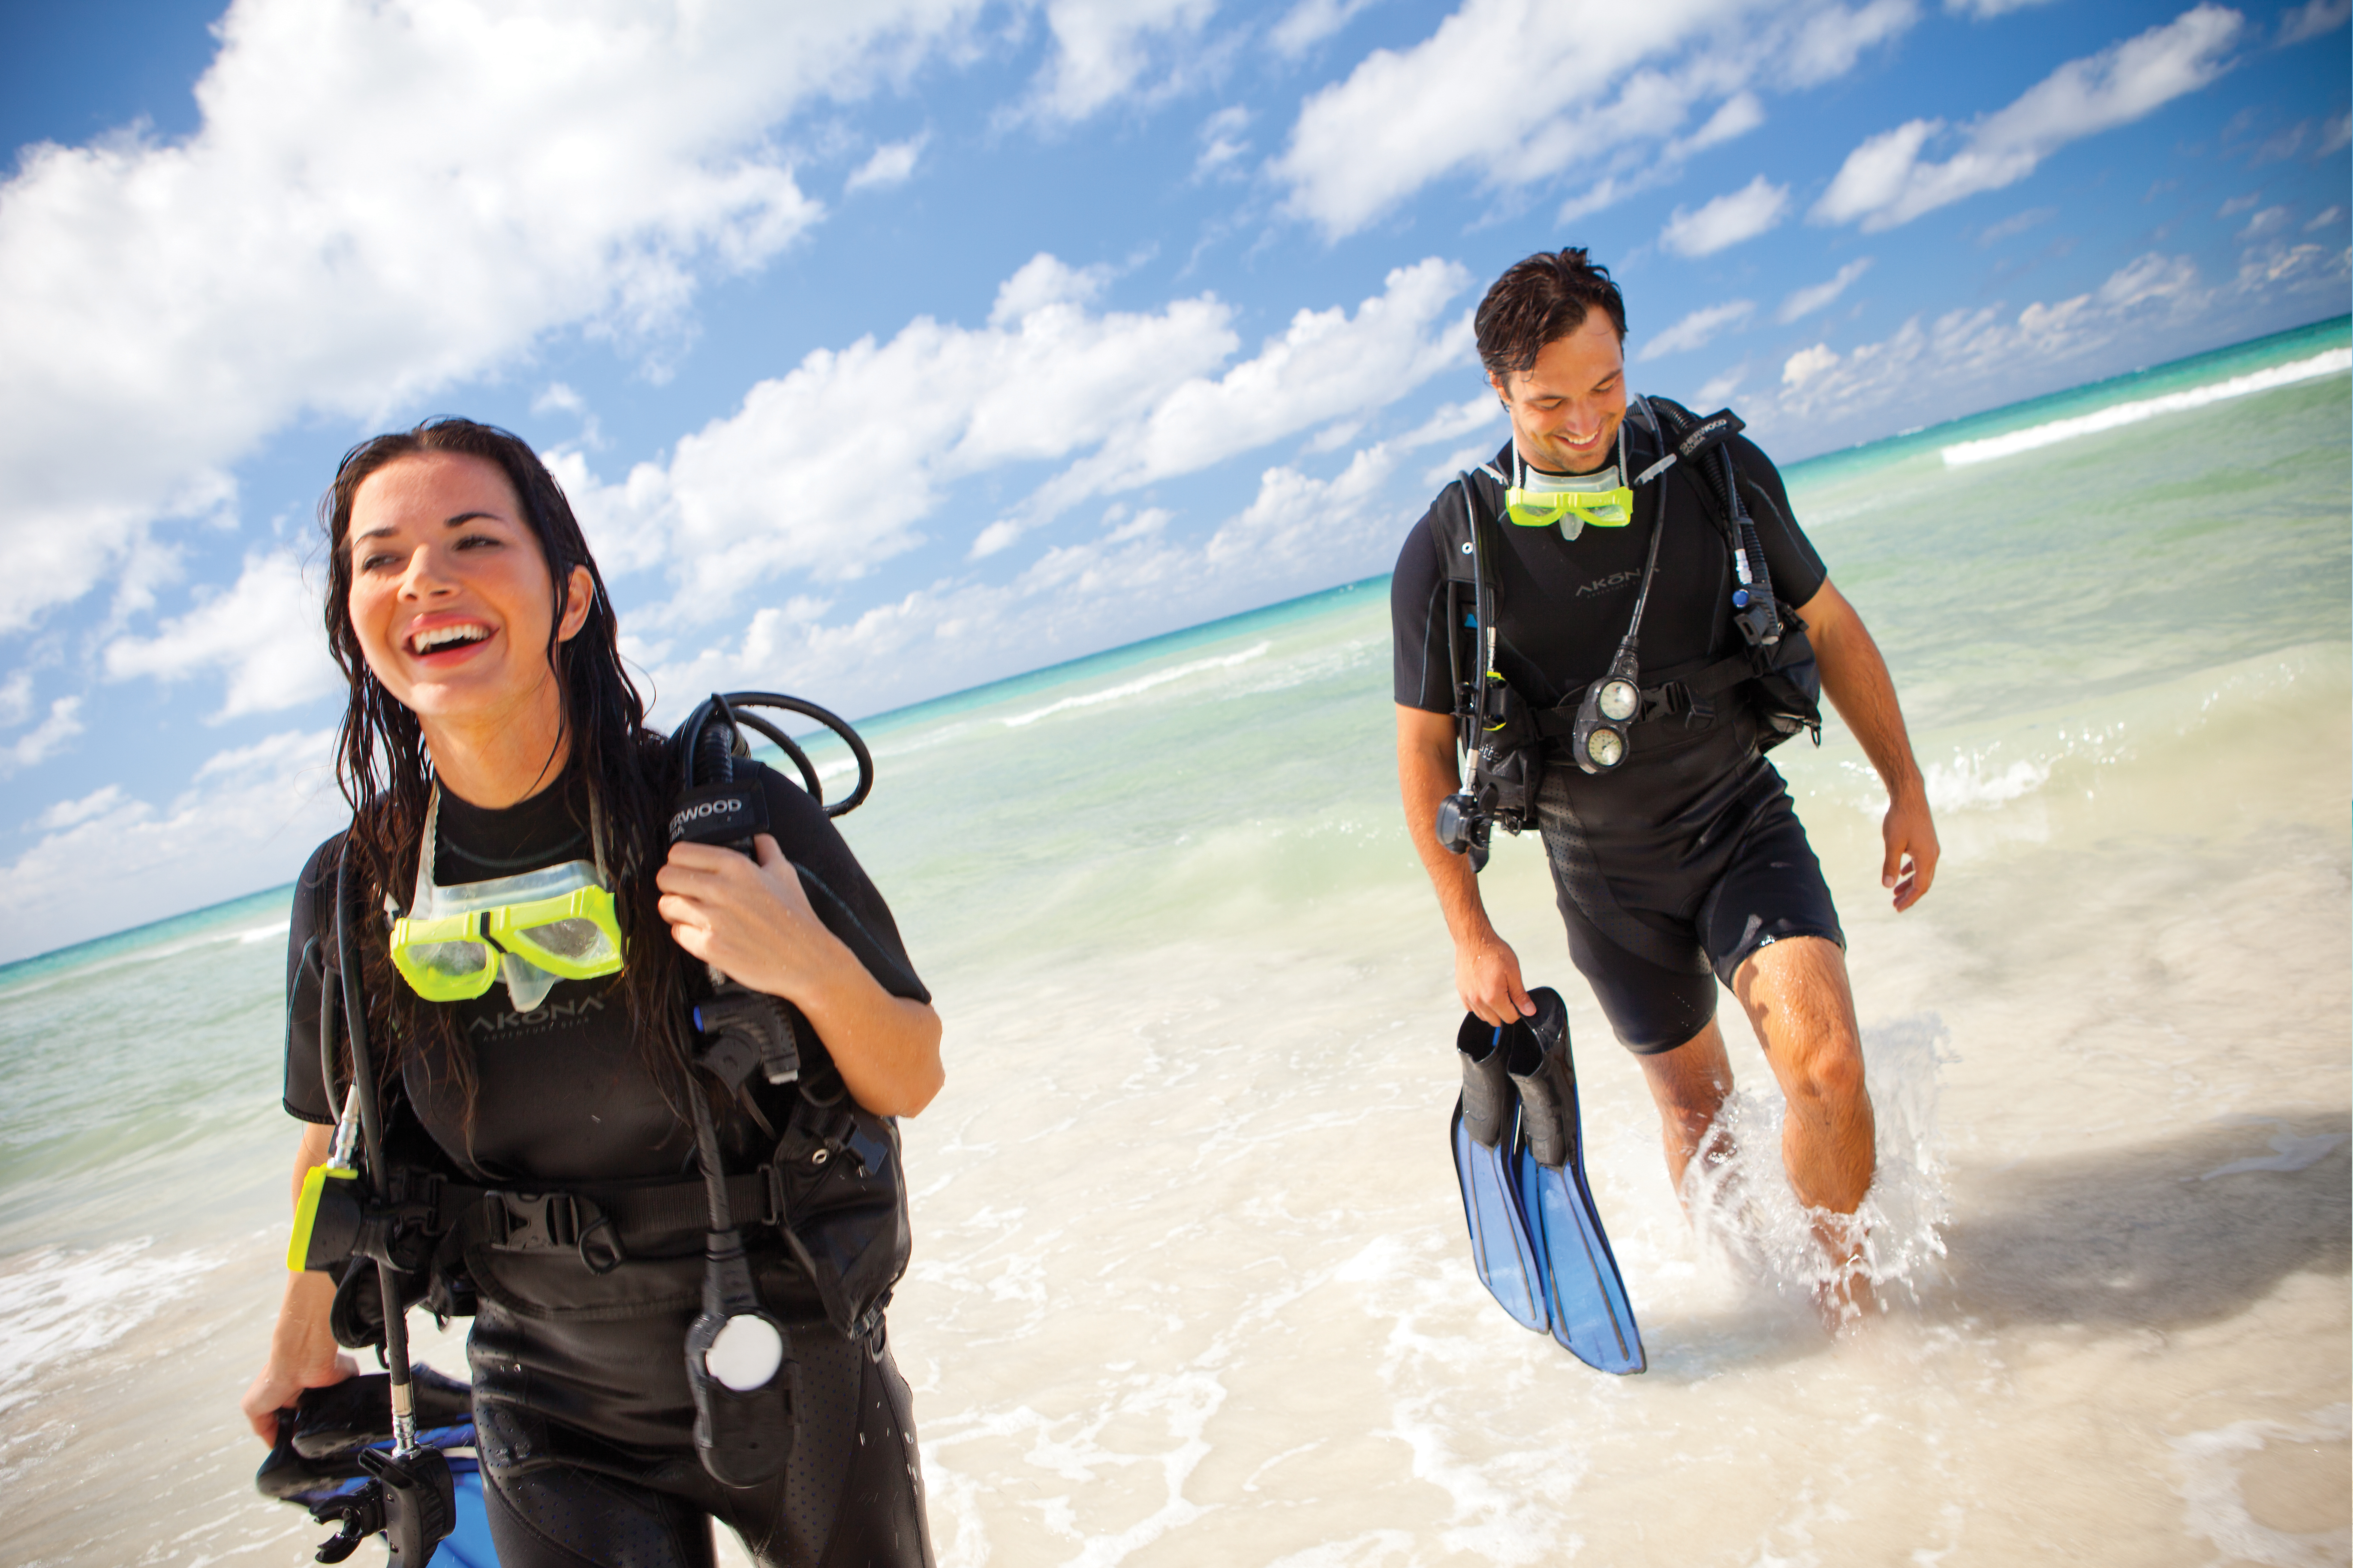 Travel Agency All-Inclusive Resort Couples Swept Away 38